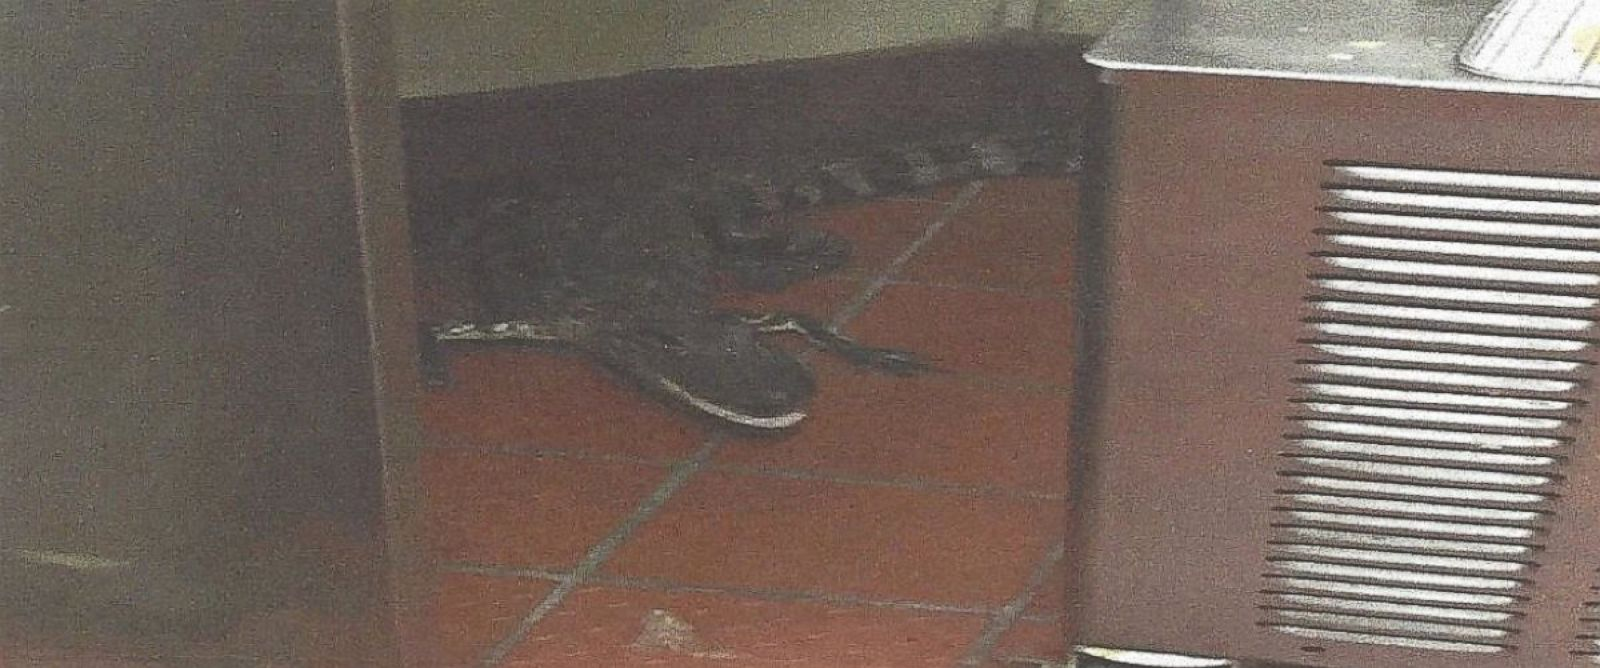 PHOTO:An alligator ended up in the kitchen of a Wendys restaurant on Oct. 12, 2015, after allegedly being thrown into the drive-thru window, according to a Florida Fish and Wildlife Conservation Commission incident report.